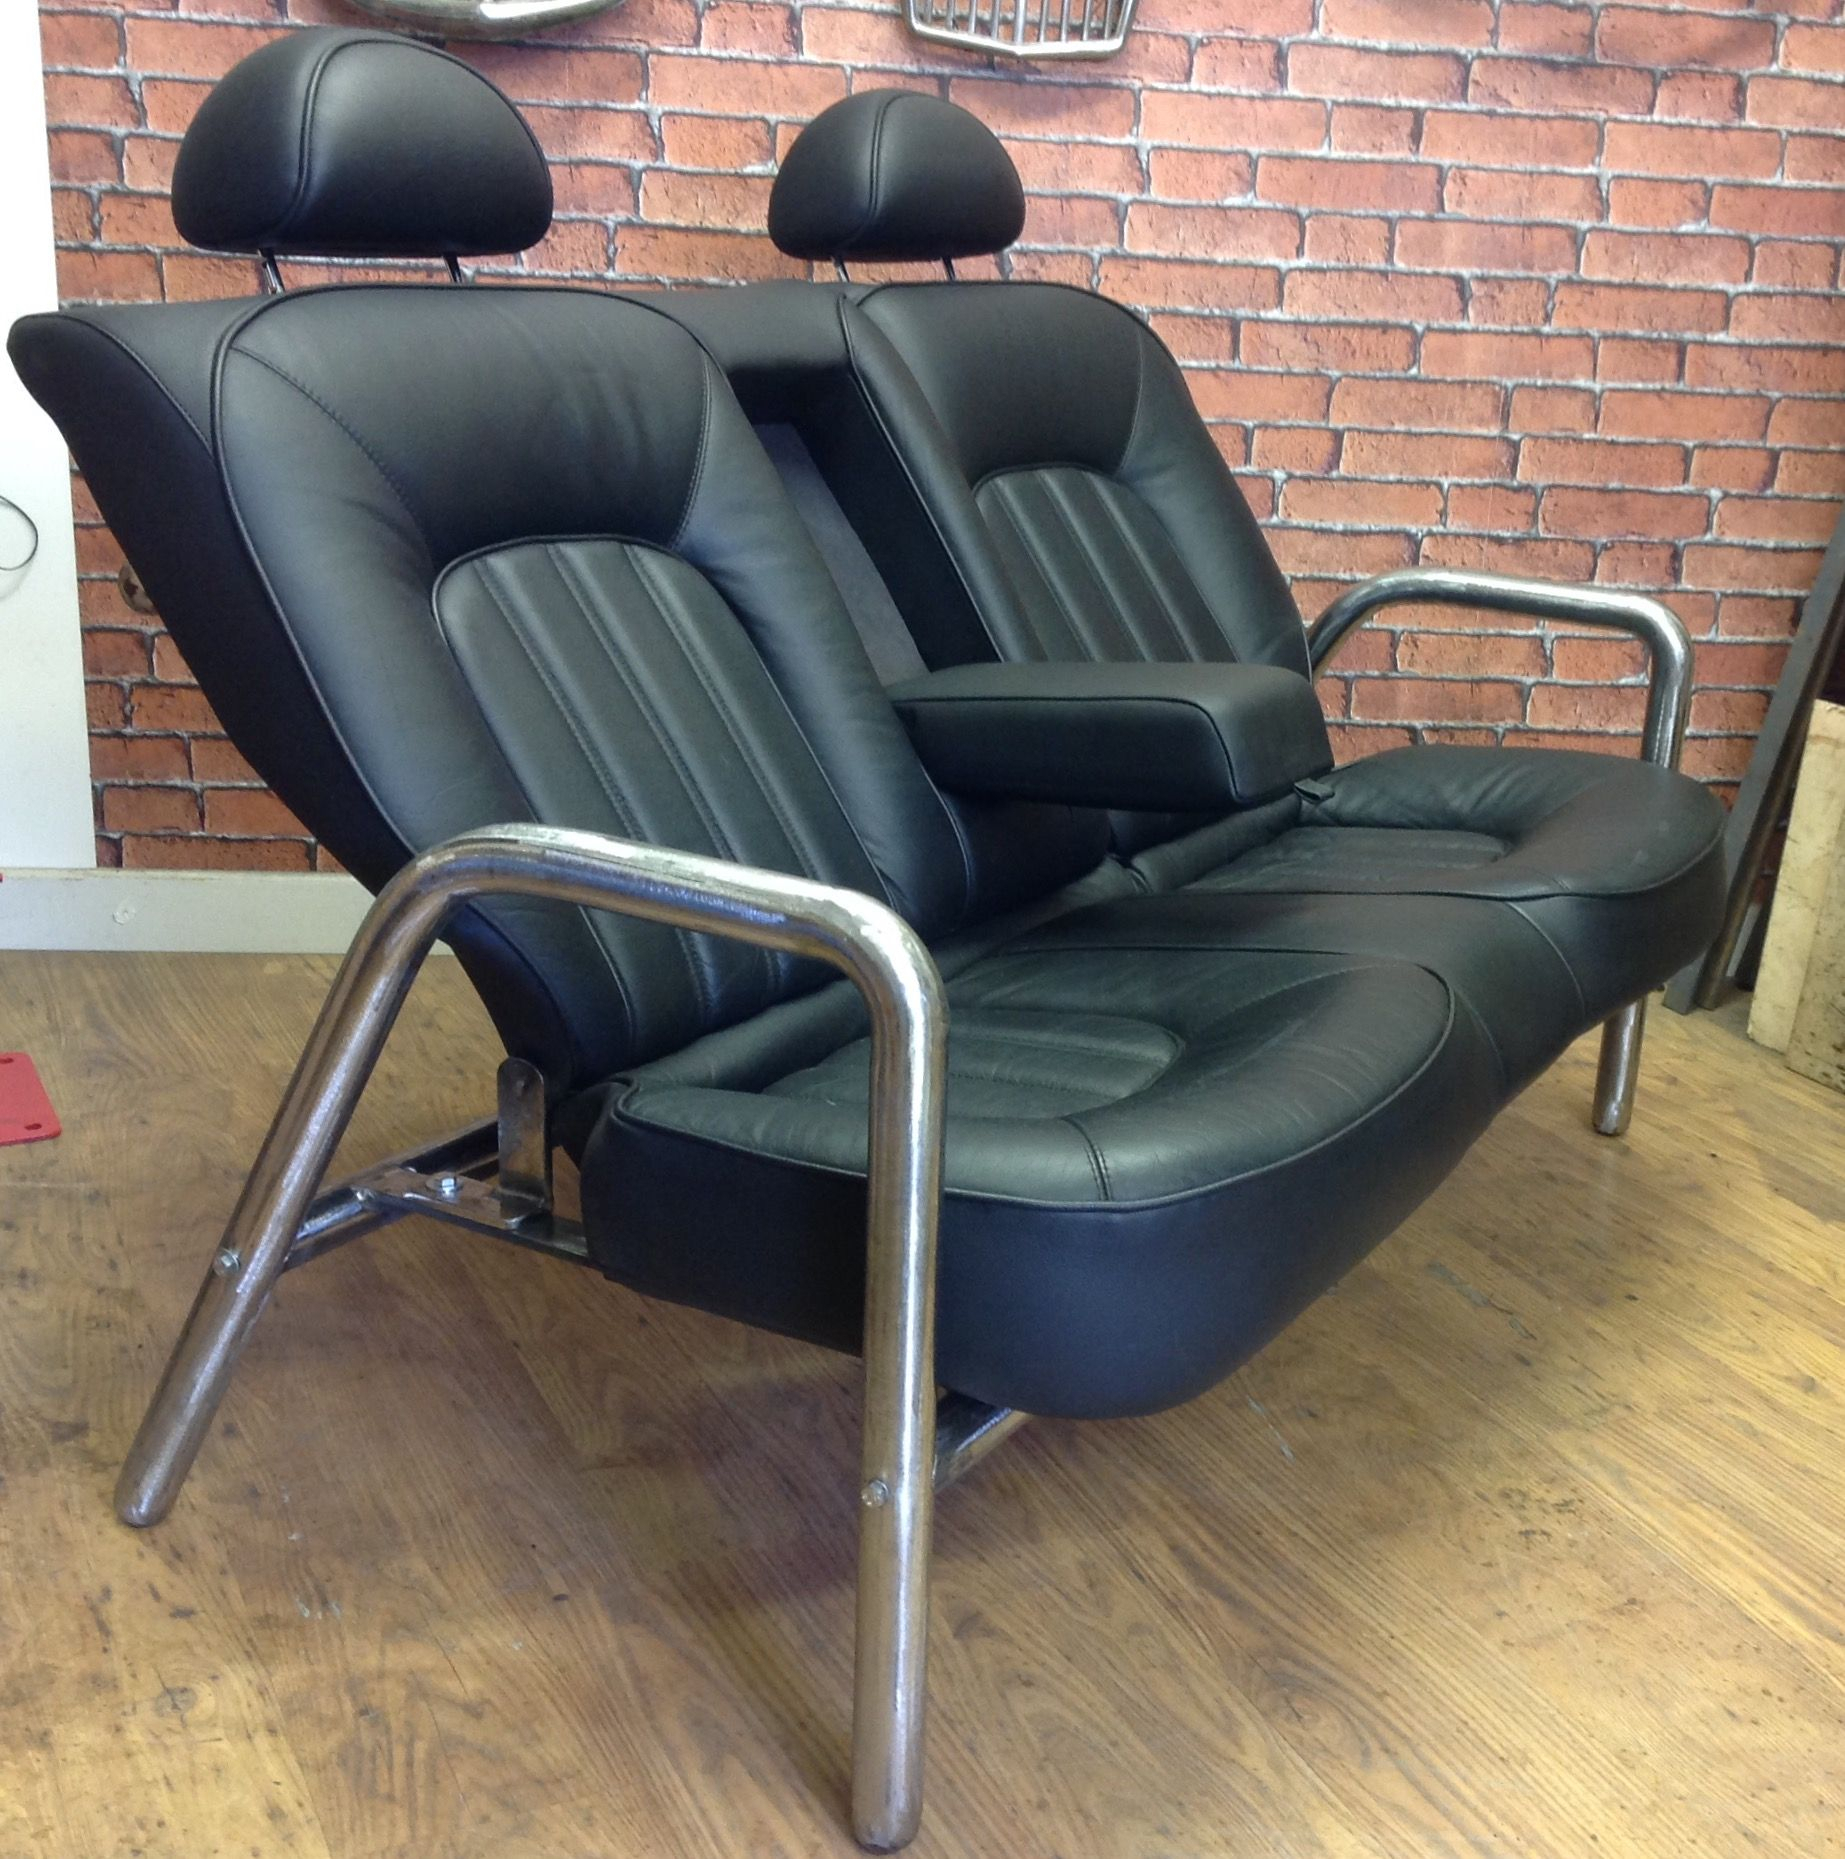 Rover Mofa. Rear Car Seat, Chair, Sofa. Loft Style (Image 19 of 25)